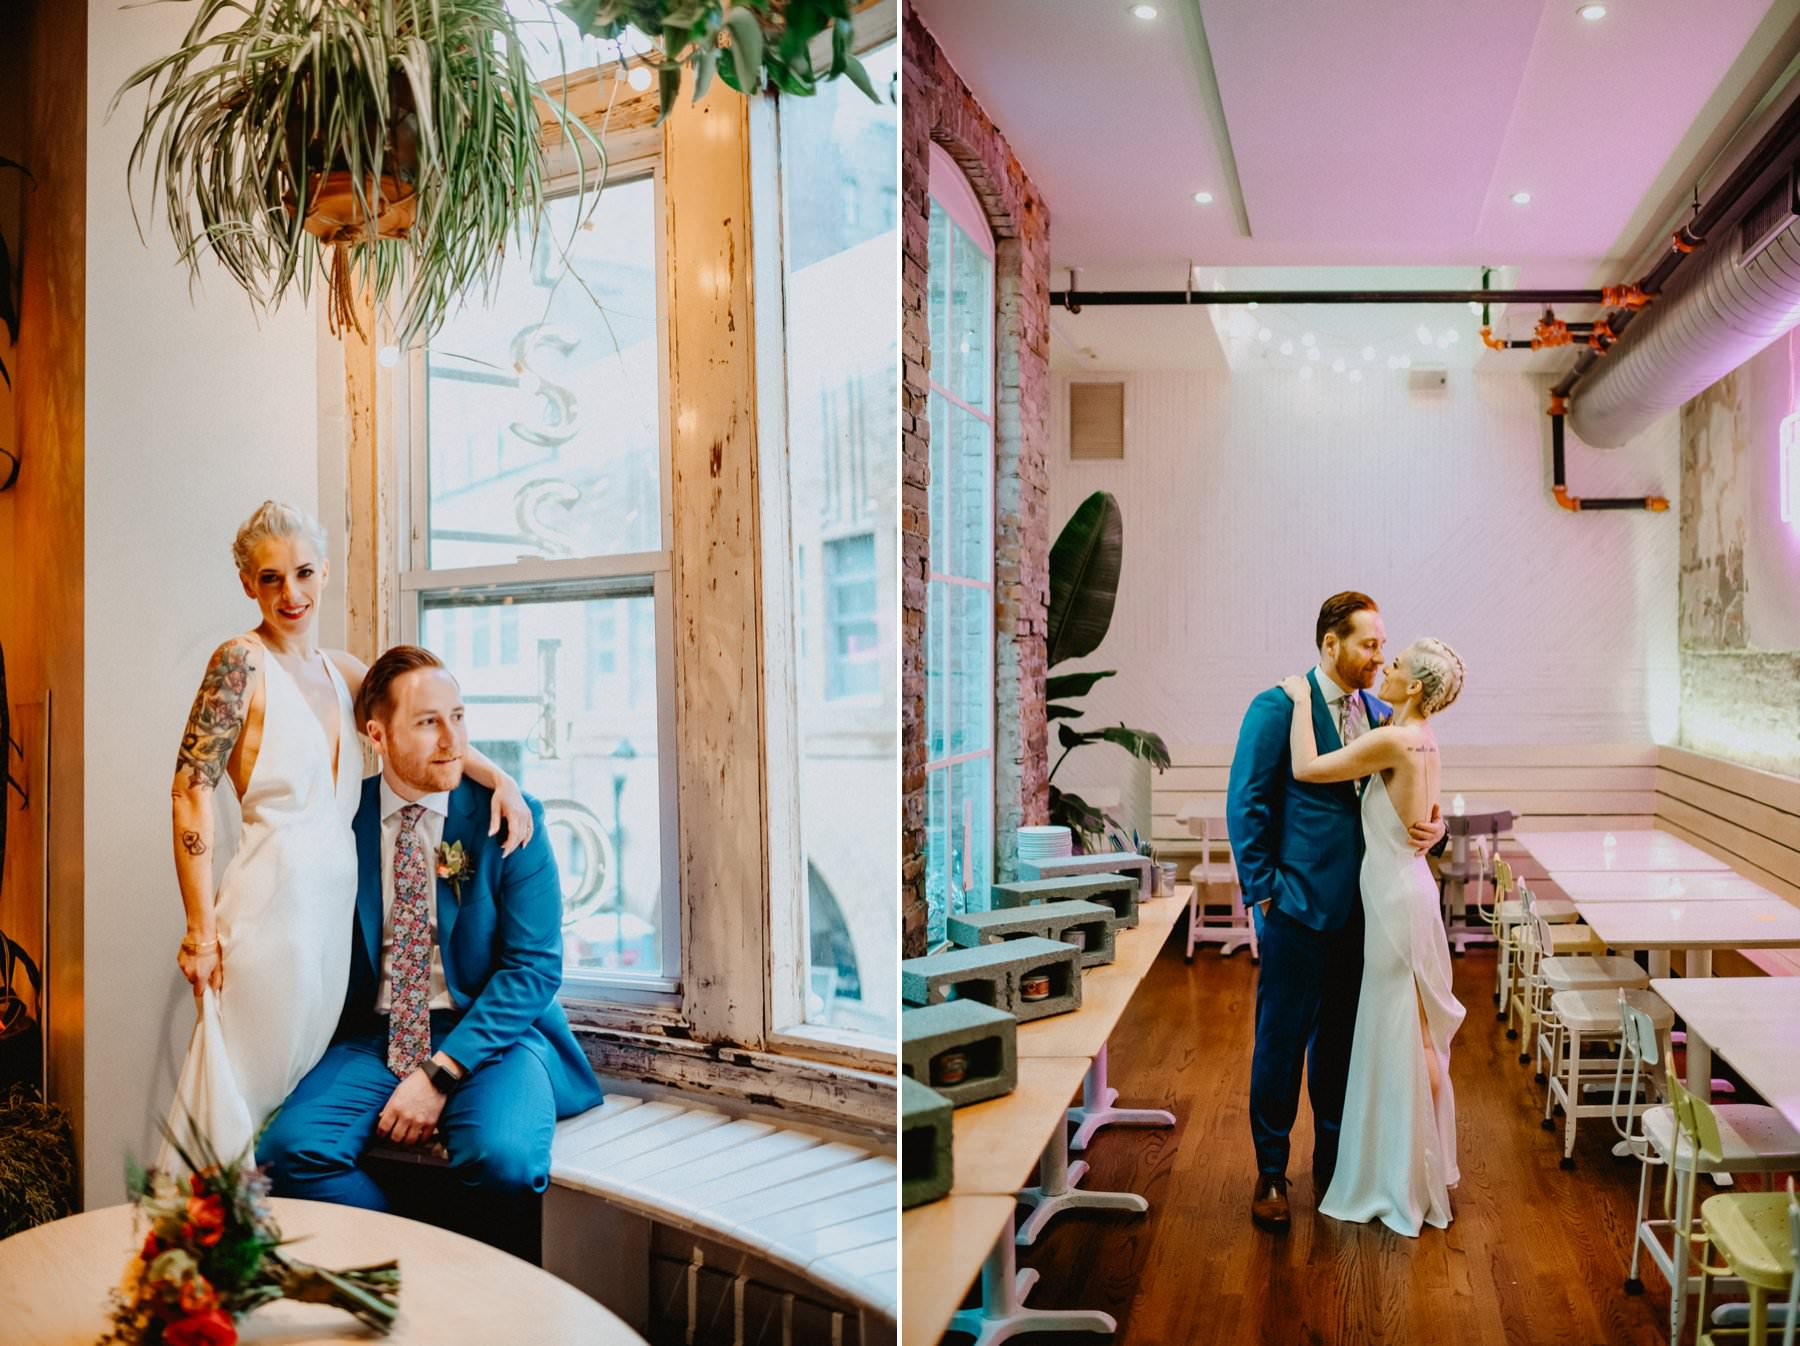 mission_taqueria_philly_wedding-39.jpg